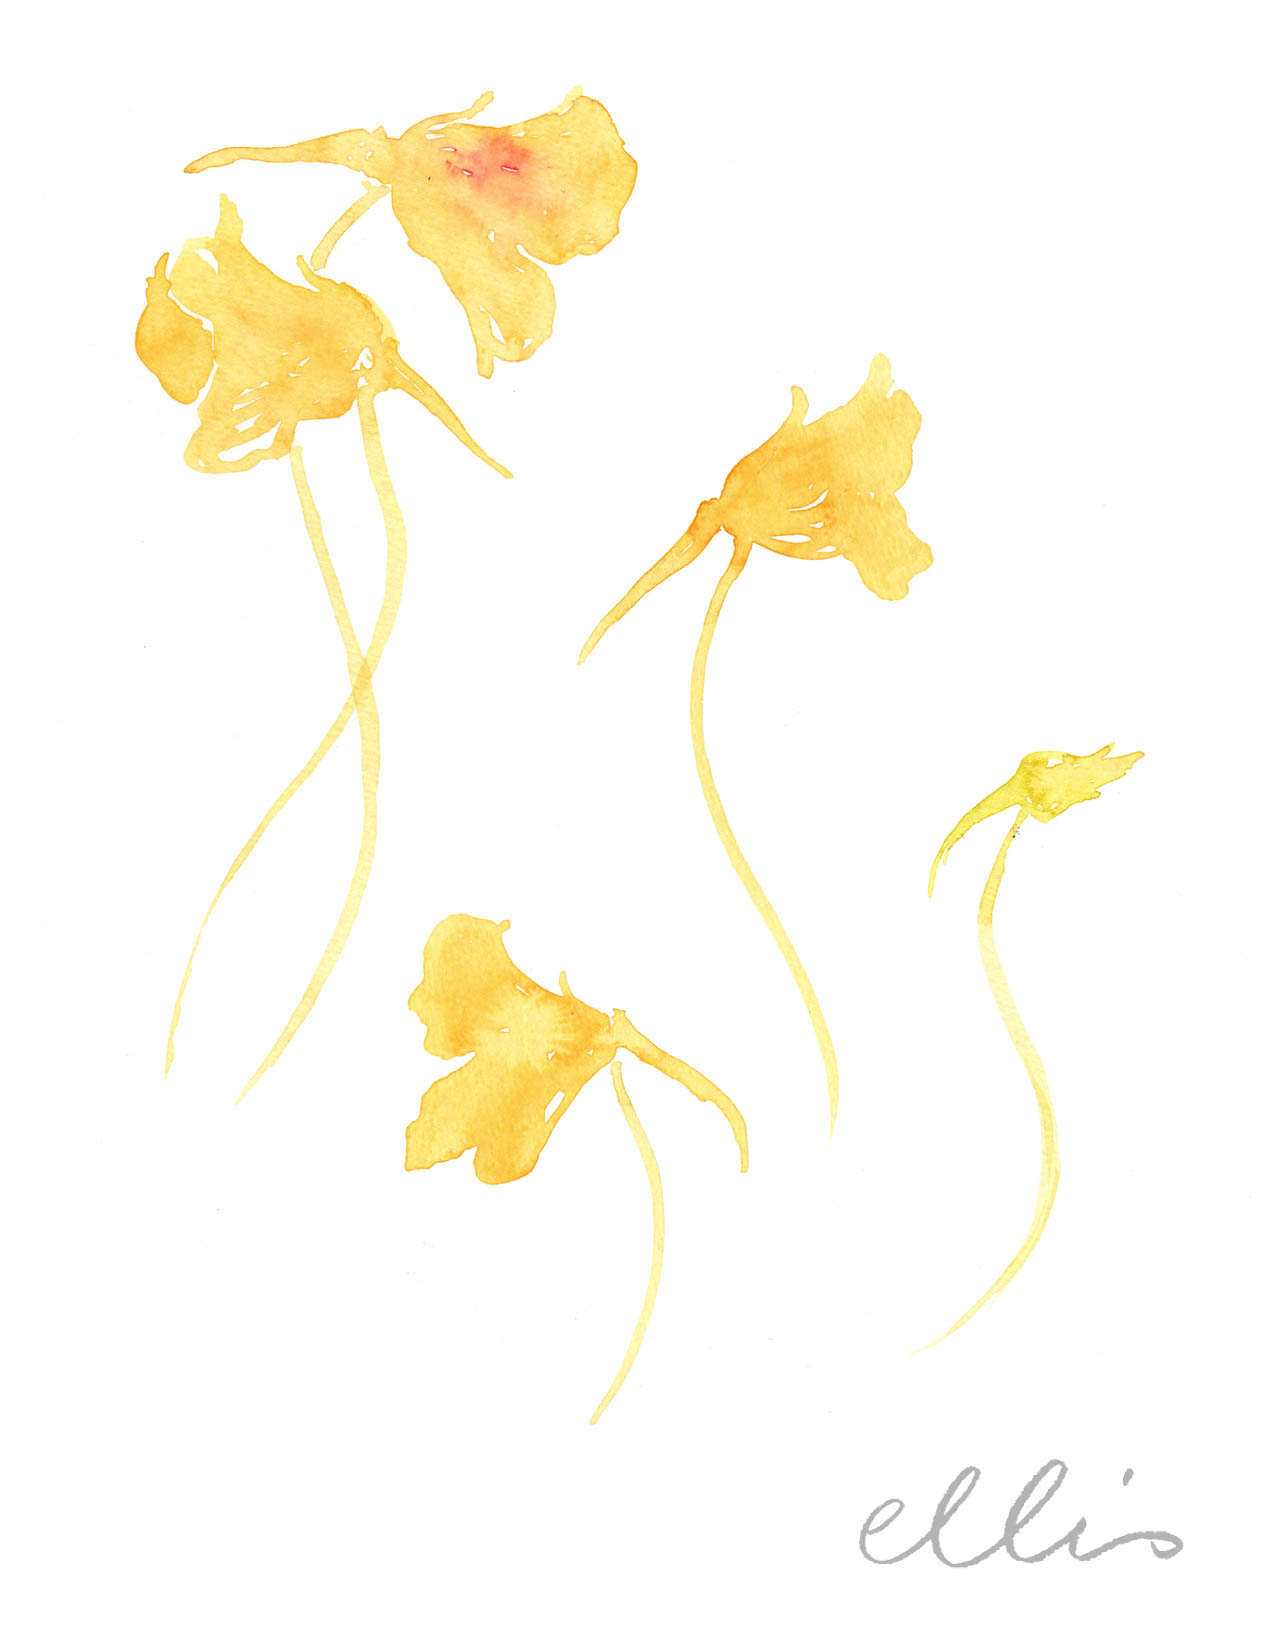 Erin Ellis_100 days project botanical drawings_2013-99.jpg